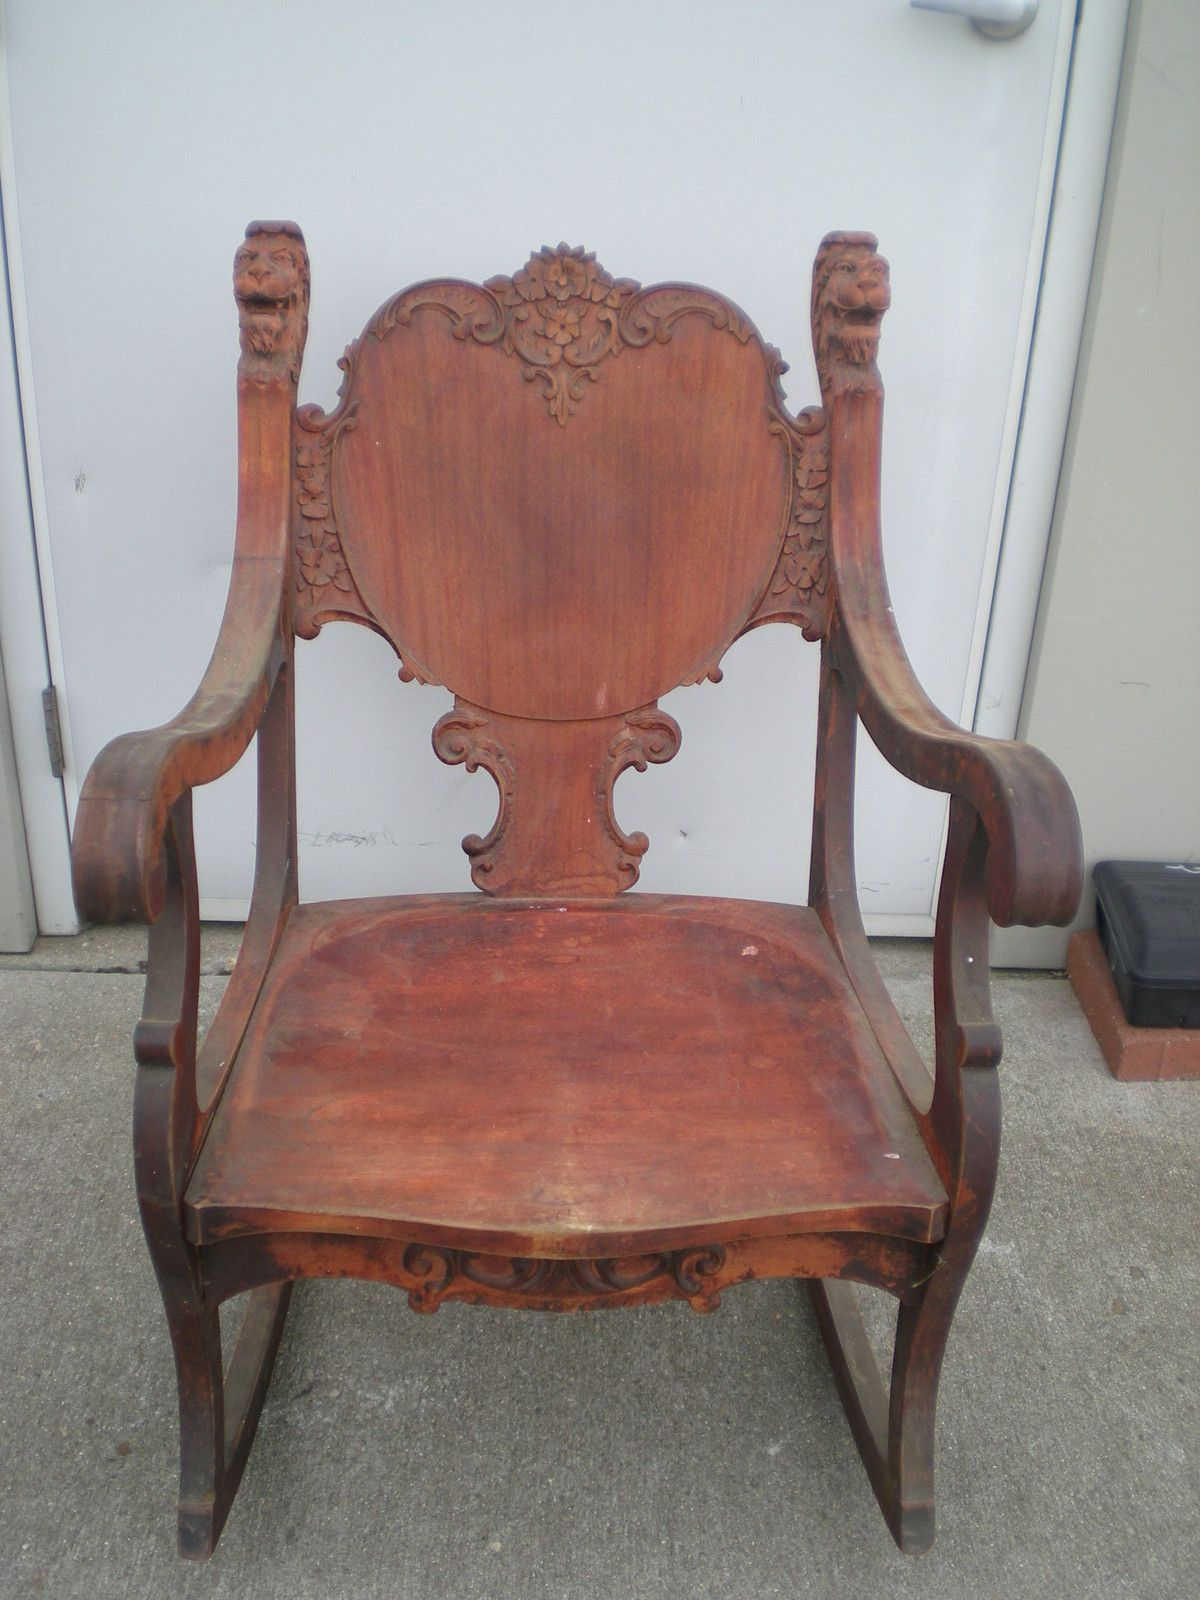 Pre -1800's Antique Rocking Chair - Pre -1800's Antique Rocking Chair ANTIQUE FURNITURE Pinterest